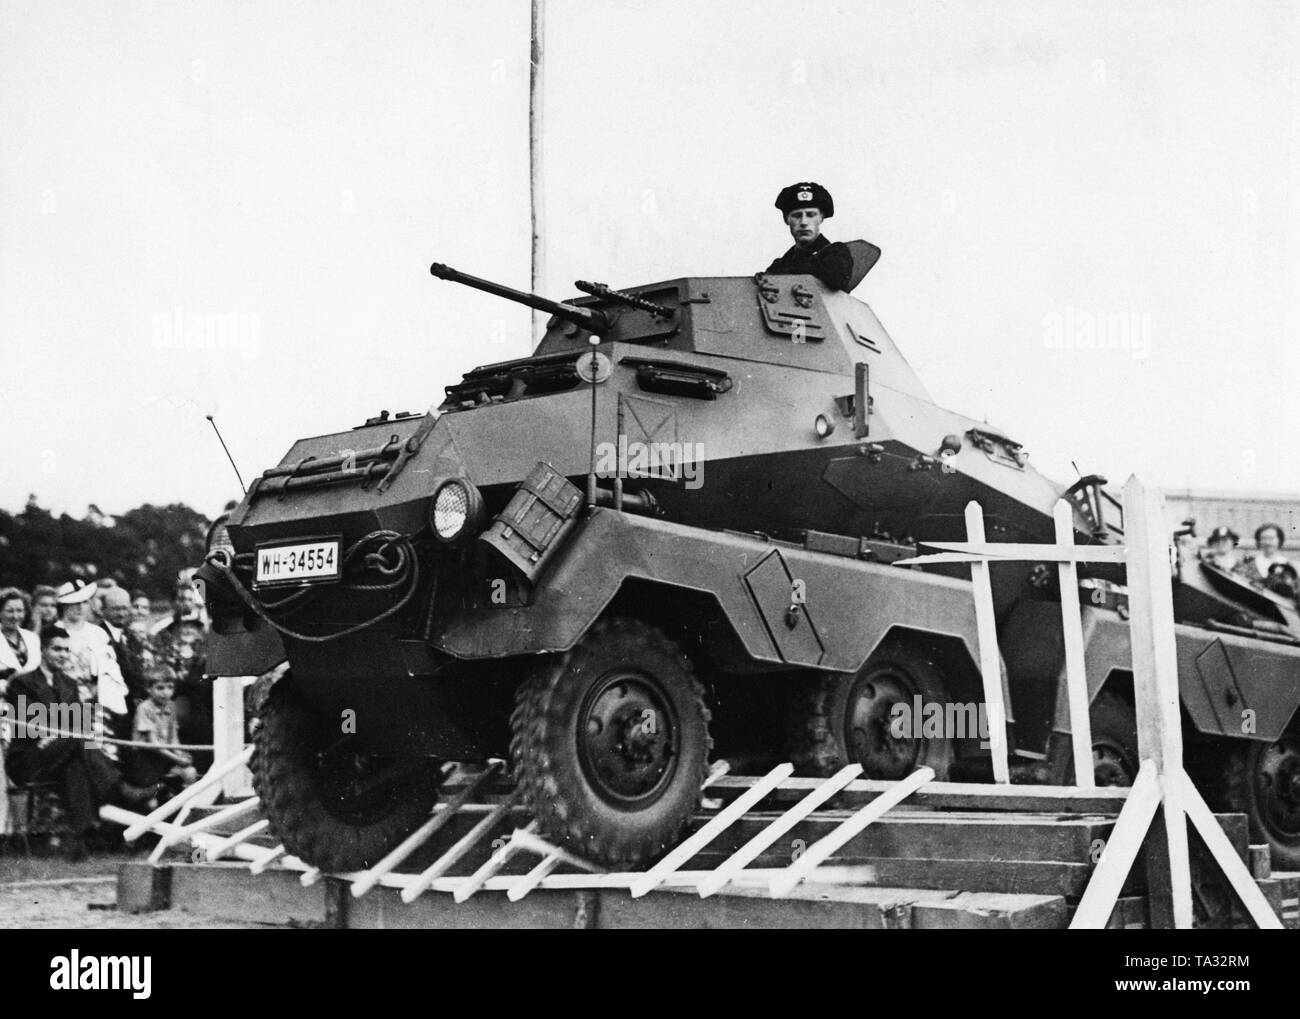 An armored car of the type Sd.Kfz.231 (8 wheeled) overcomes an obstacle during a military review. The demonstration took place at the tradition takeover of the 1st Garde-Ulanen-Regiment by the 3rd Squadron of the 4th (Prussian) Cavalry Regiment, later 3rd Reconnaissance Detachment. - Stock Image